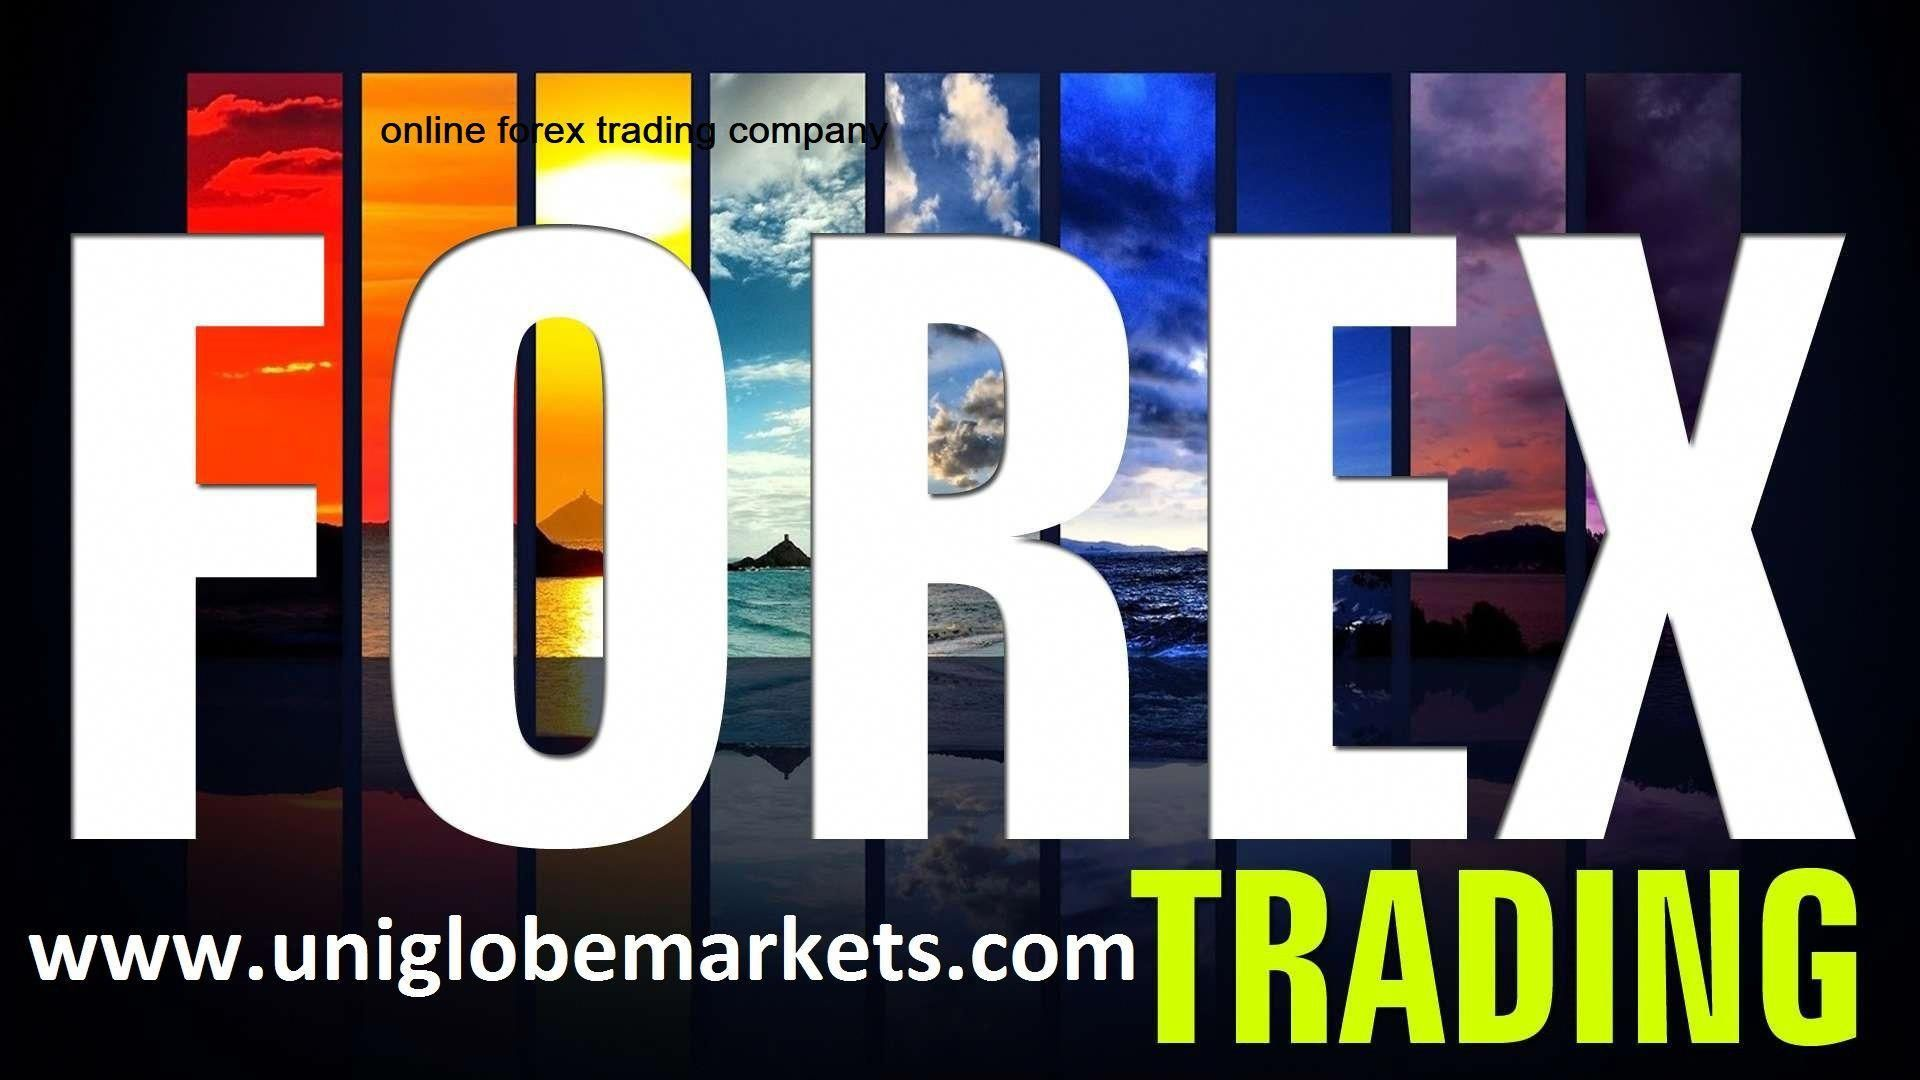 Get The Forex Trading Services By Award Wining Uniglobemarkets Company In London United